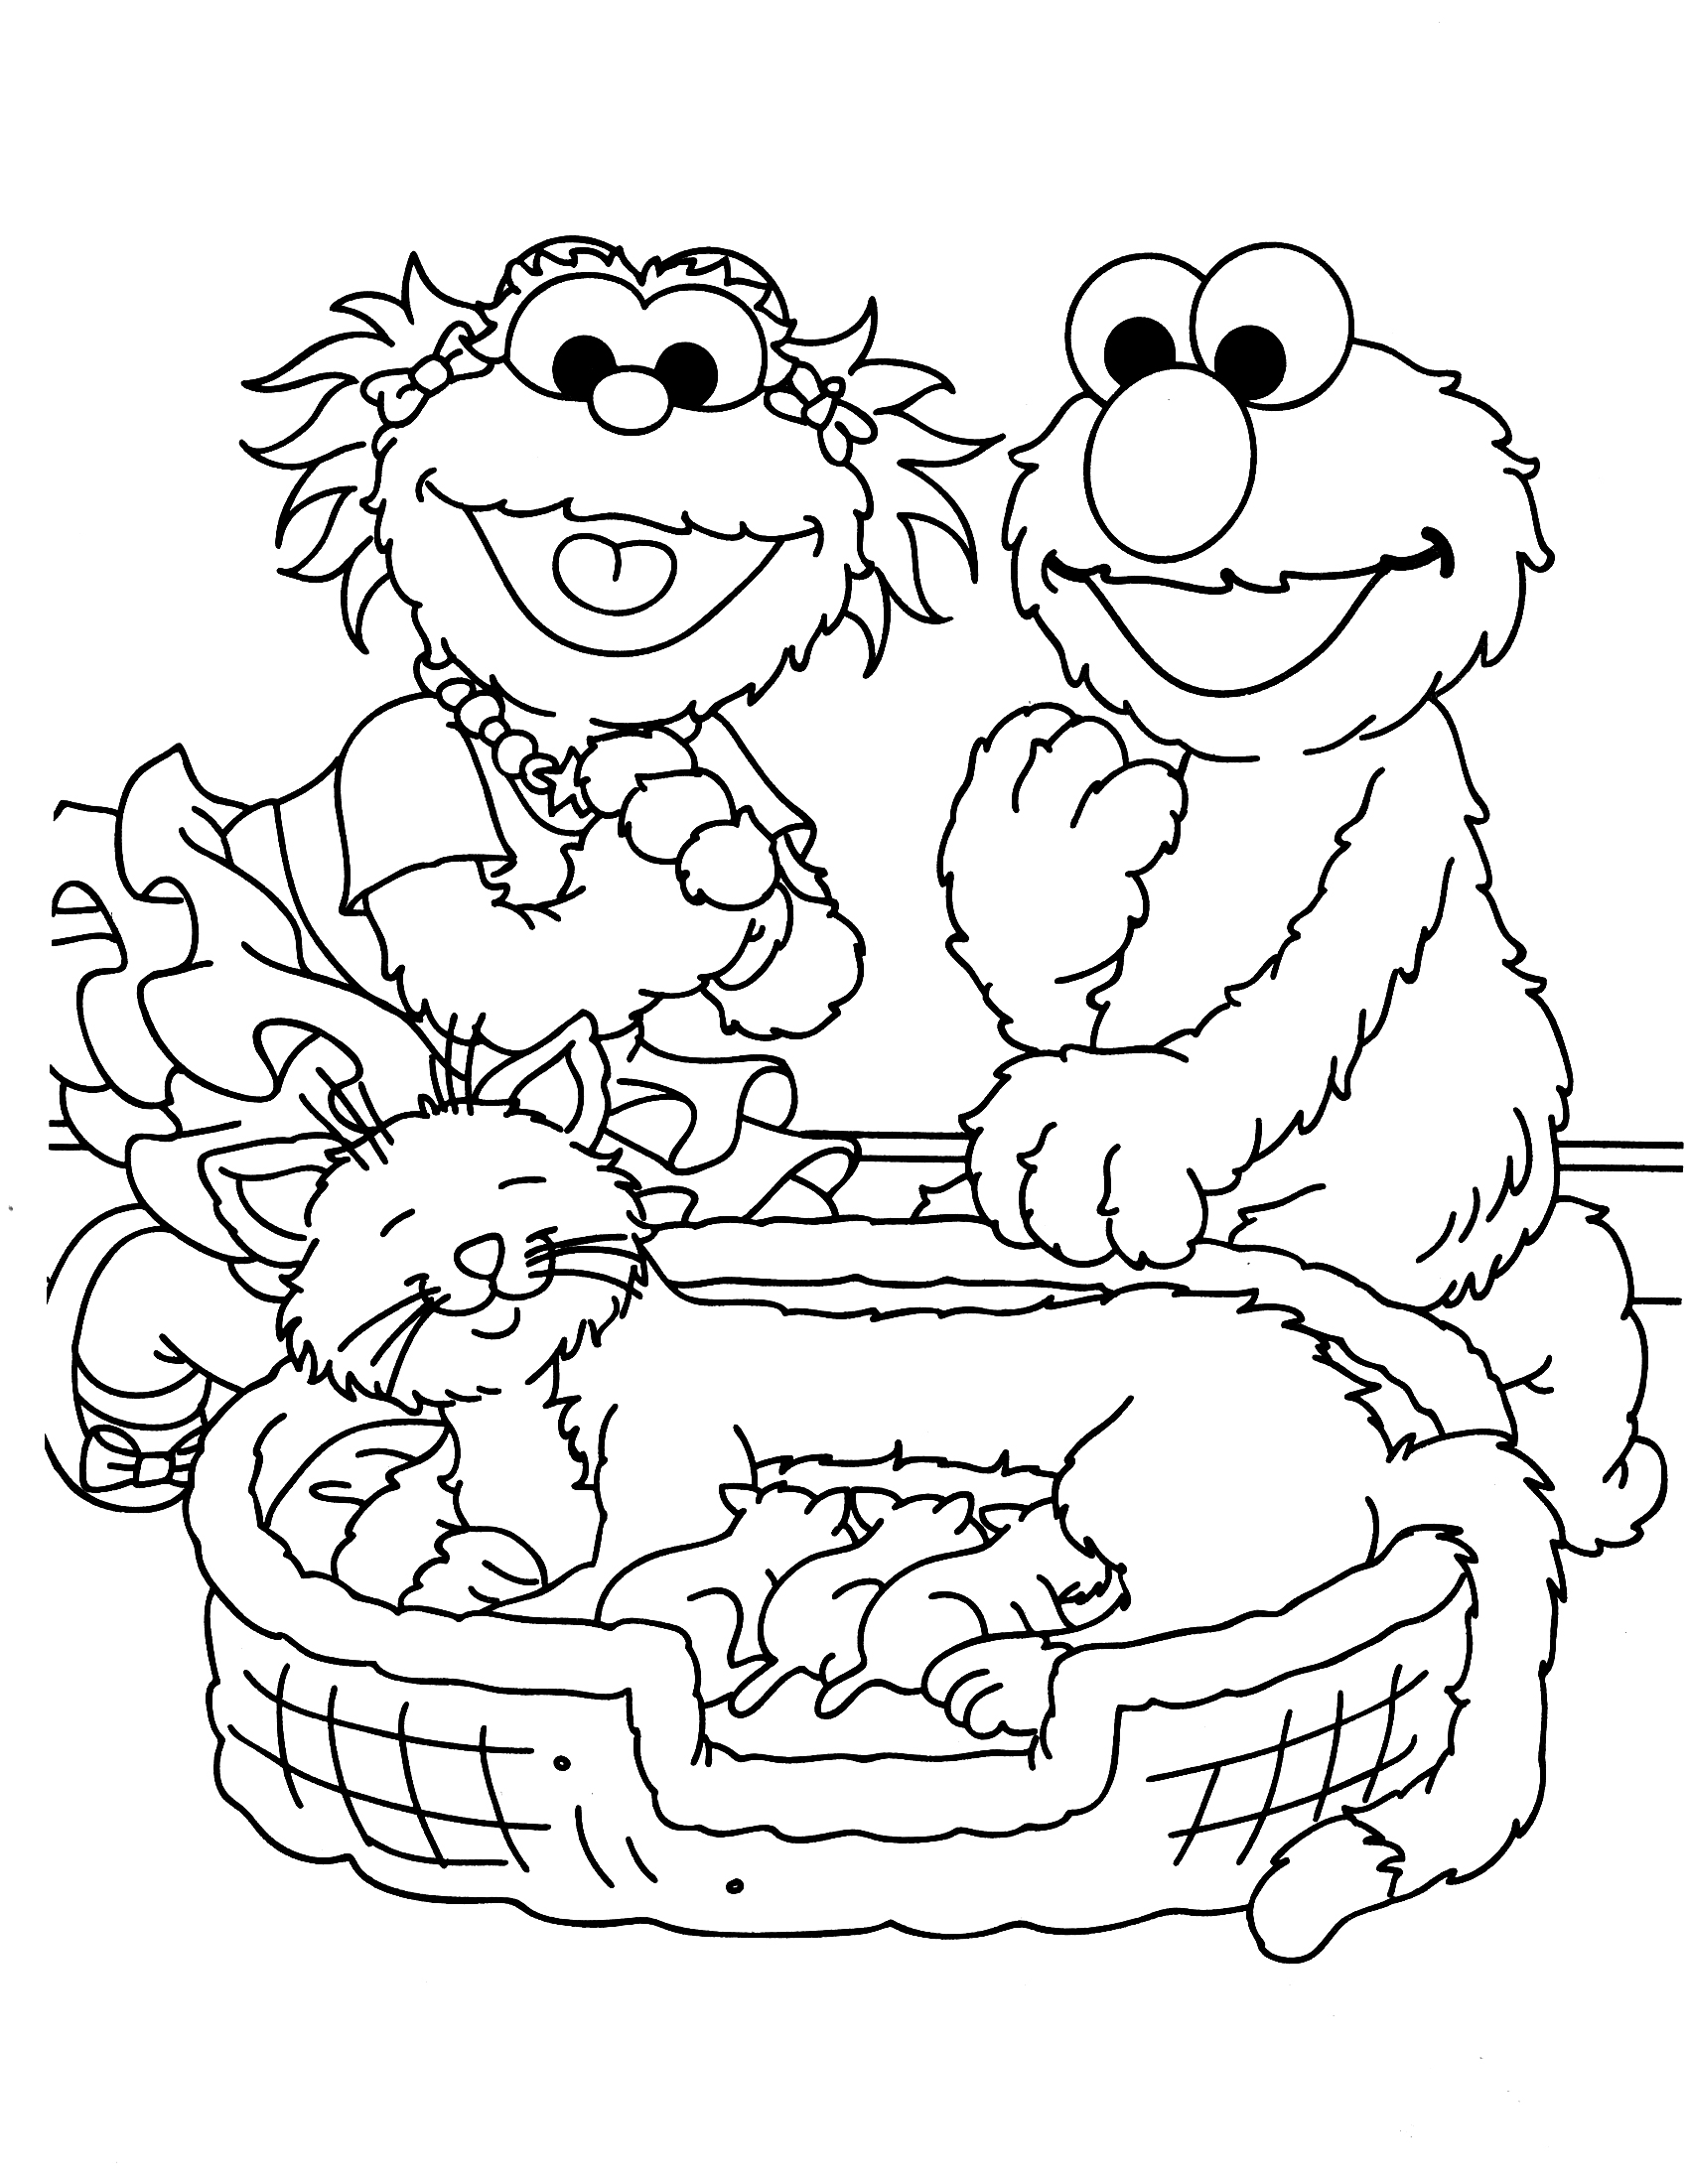 seasme street coloring pages - photo#18